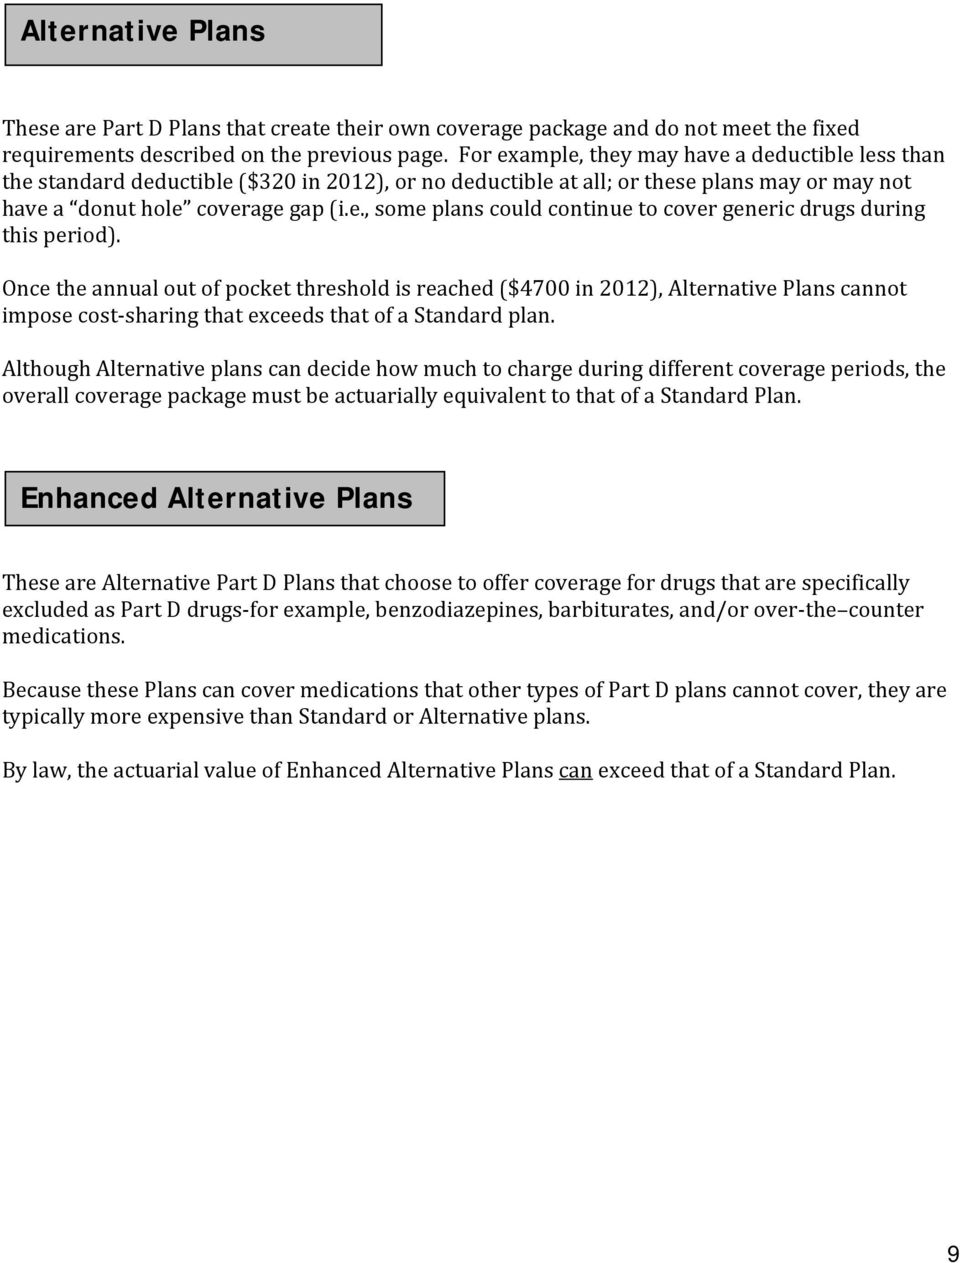 Once the annual out of pocket threshold is reached ($4700 in 2012), Alternative Plans cannot impose cost sharing that exceeds that of a Standard plan.